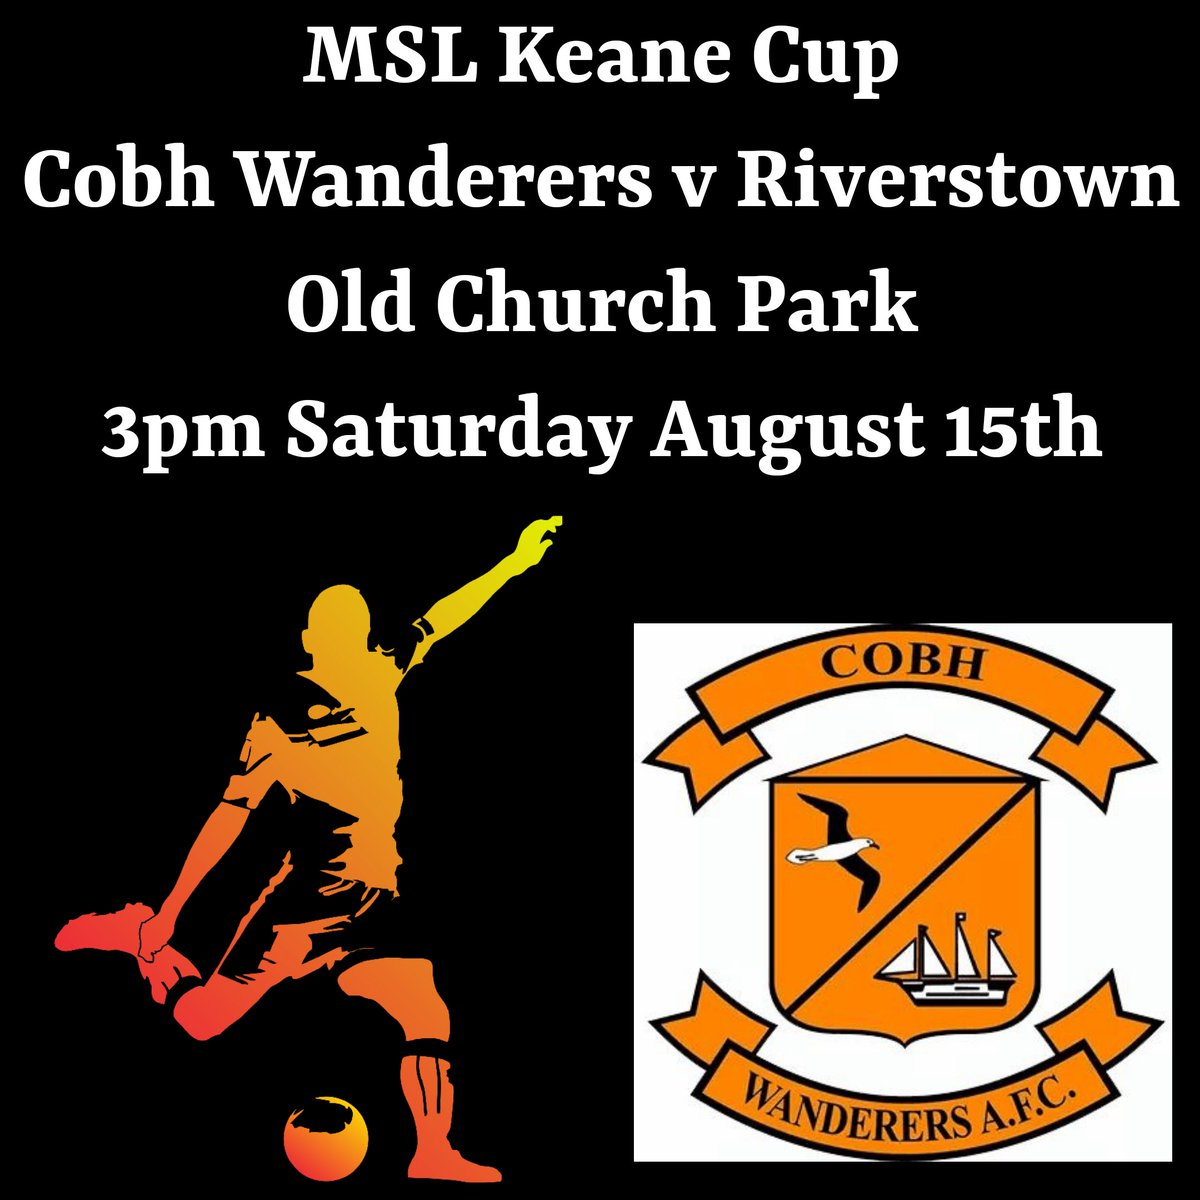 Best of luck to @cobhwanderers who get back to action this weekend with a Keane Cup Tie v @RiverstownFC at Old Church Park, Saturday at 3pm, August 15th 🏆  Read More ⬇️ https://t.co/81DJnk0vAF  #Cobh #Cork #Ireland #MSL  @GreatIslMedia @Cobh4Football https://t.co/HBNFKhOB85